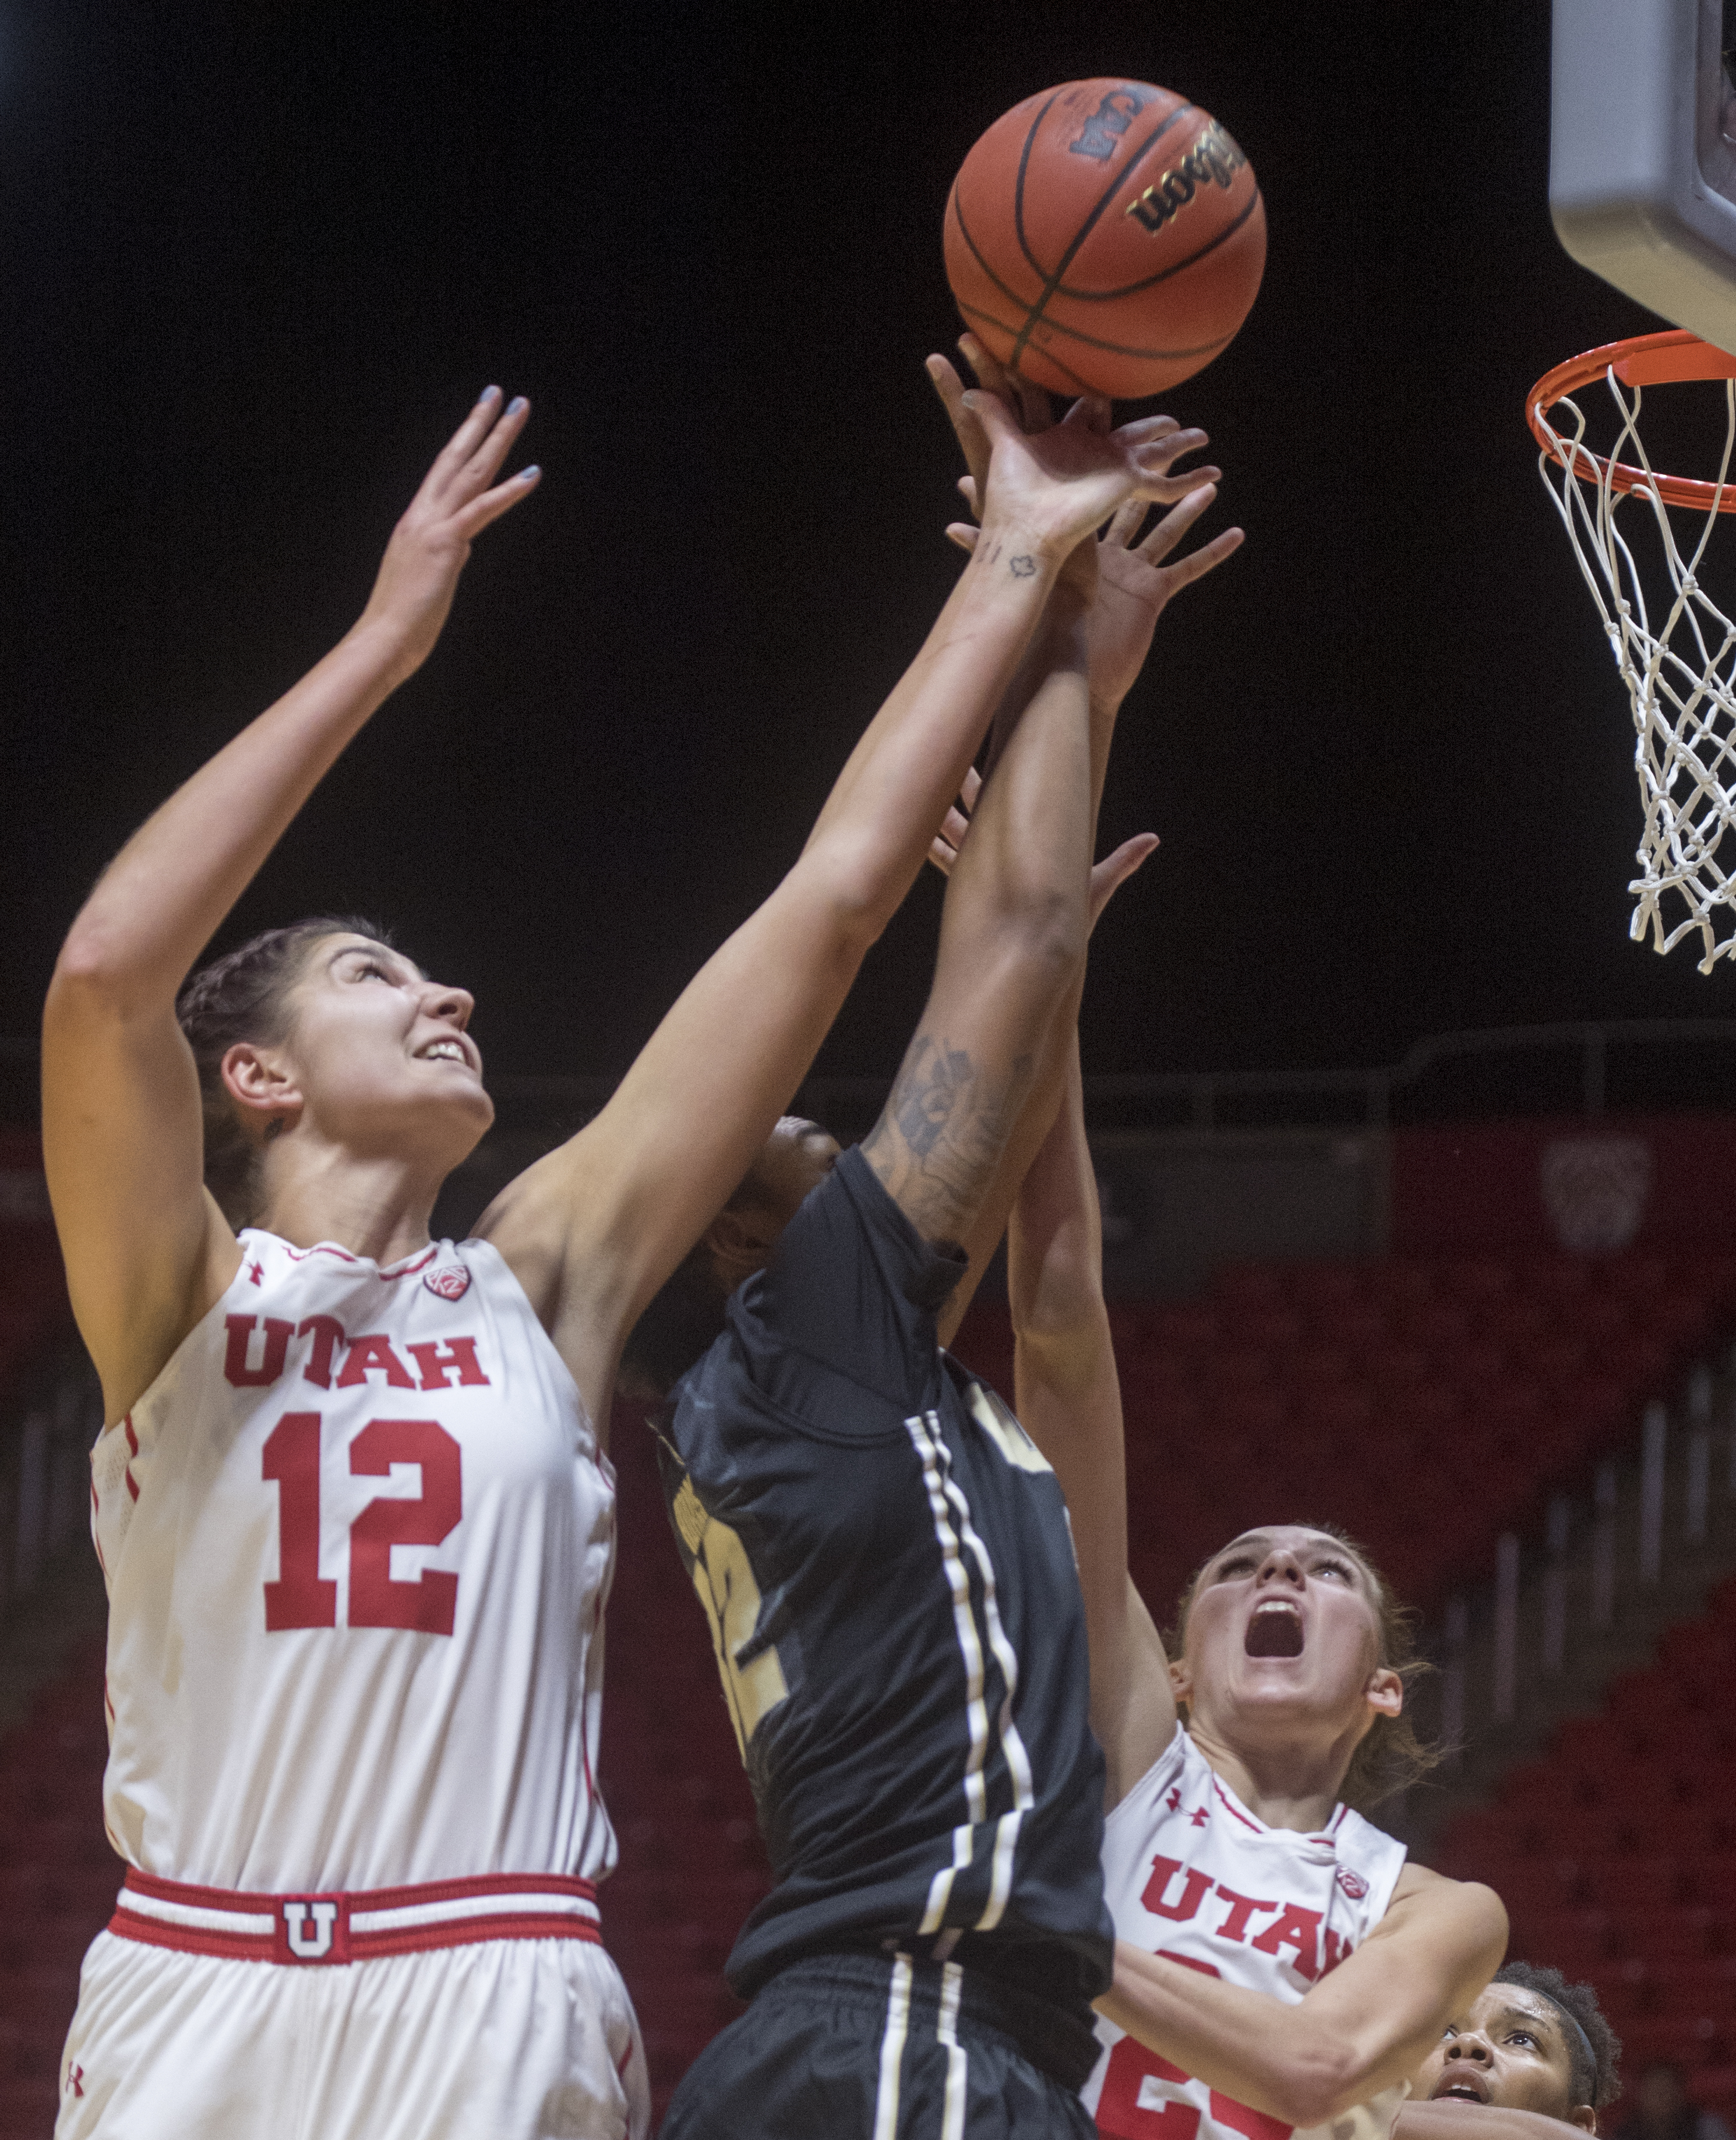 (Rick Egan  |  The Salt Lake Tribune)  Utah Utes forward Emily Potter (12) goes up for a rebound along with Purdue Boilermakers forward Ae'Rianna Harris (32), in basketball action Utah Utes vs. Purdue Boilermakers, at the Thomas M. Huntsman Center, Monday, November 20, 2017.